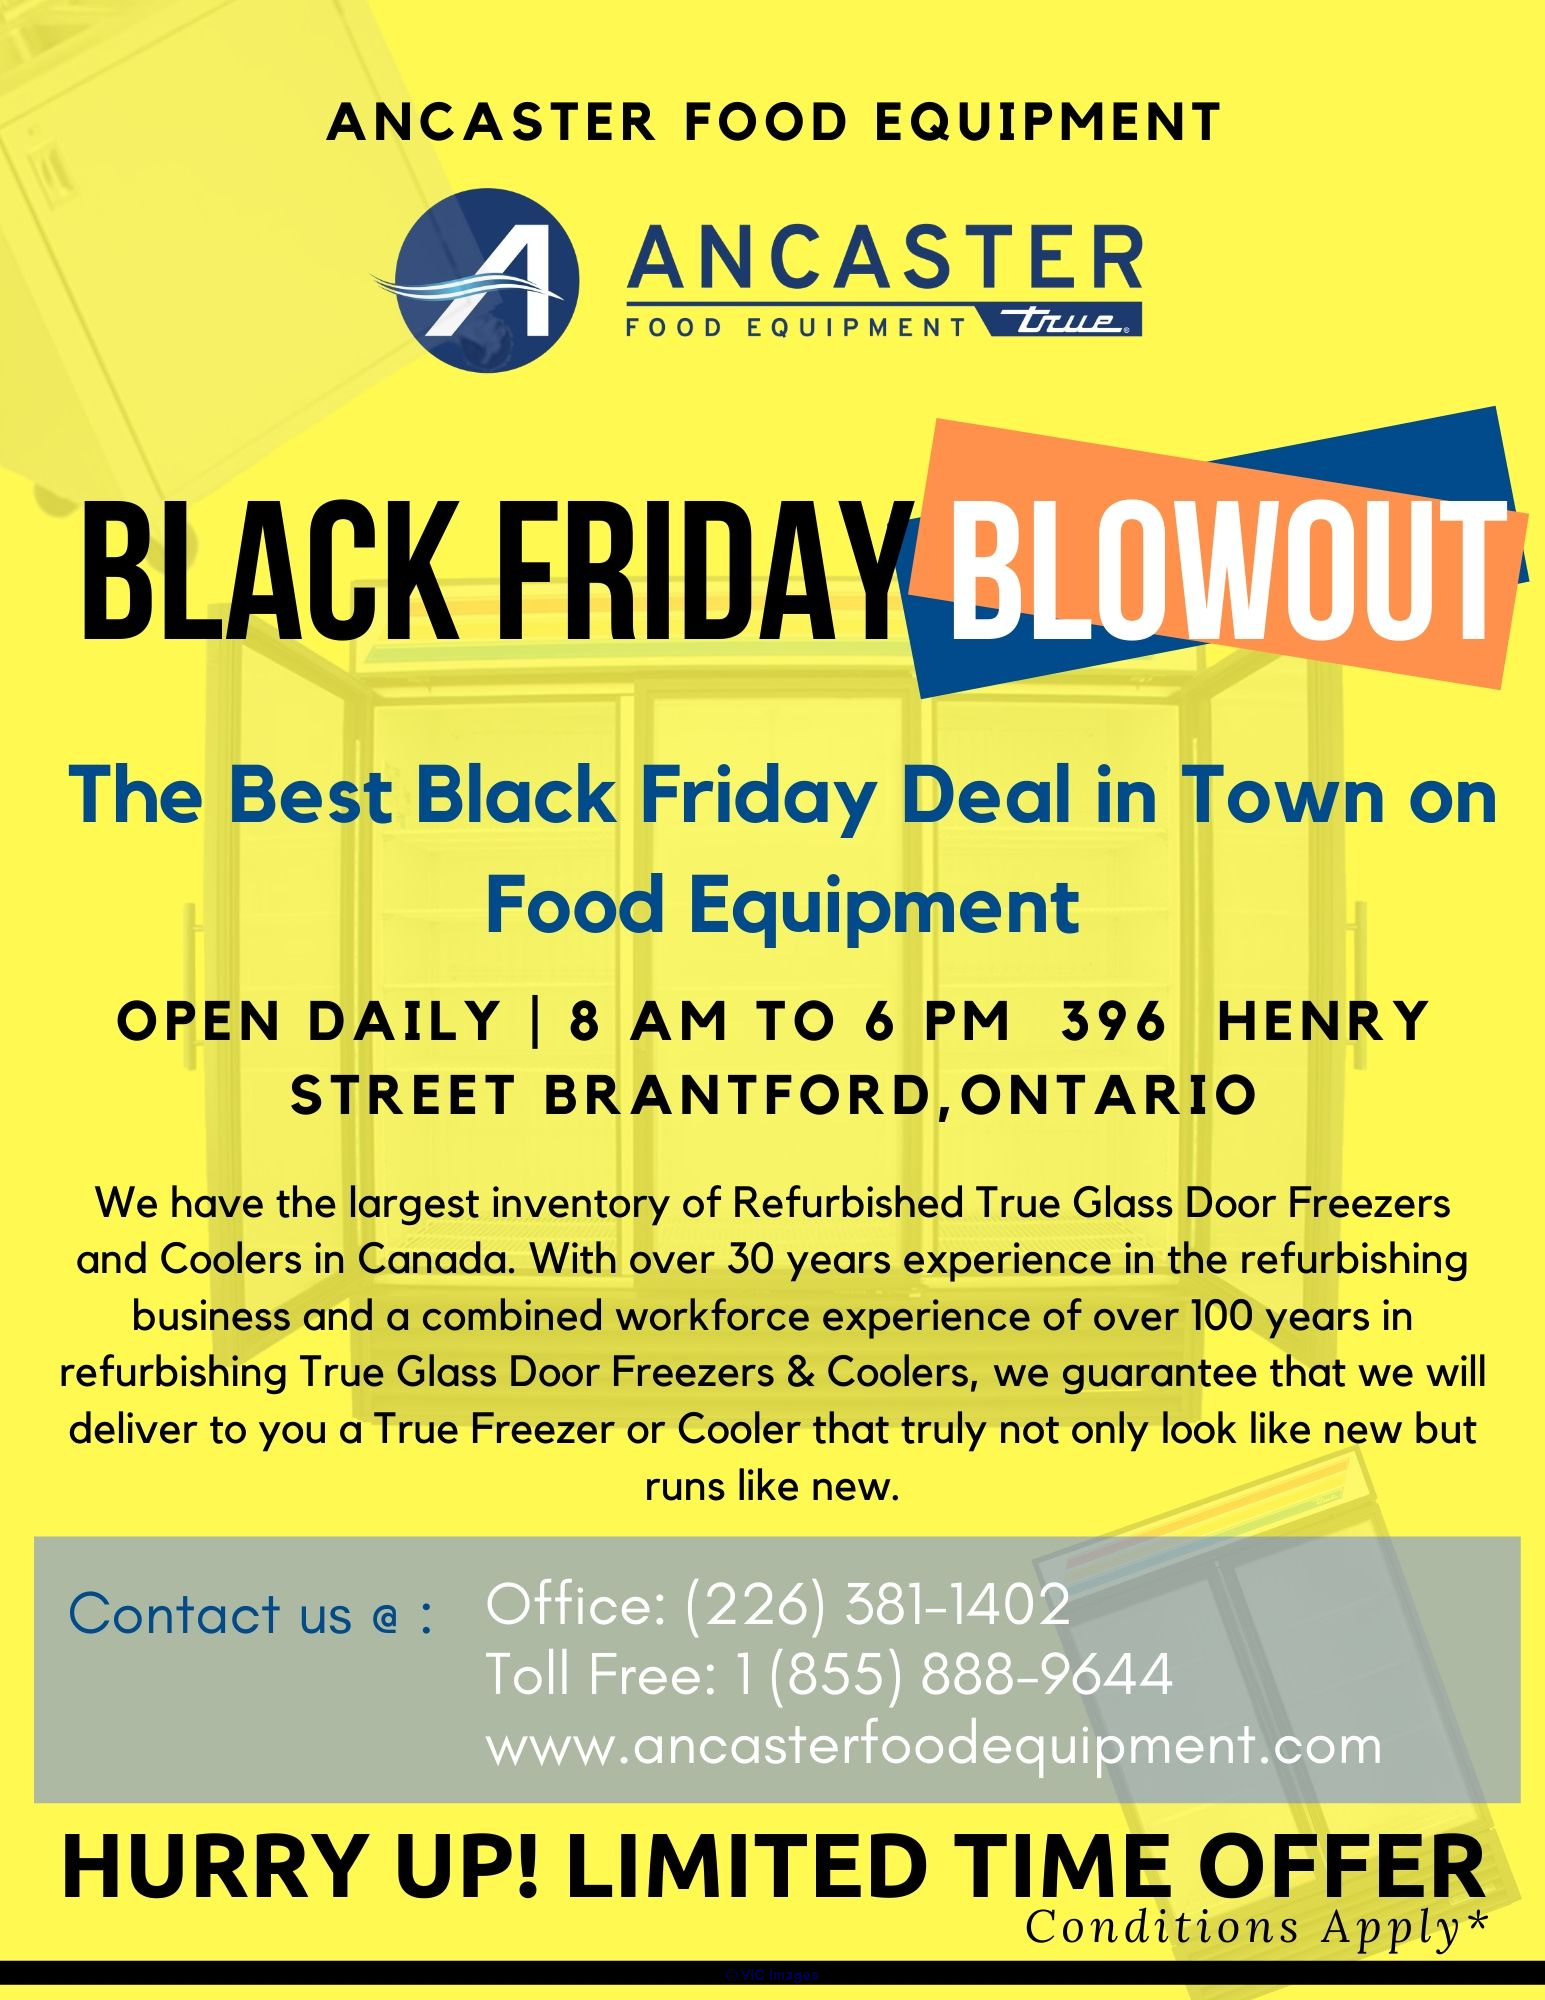 Ancaster Black Friday BlowOut Sale- Refurbished Coolers and Freezers